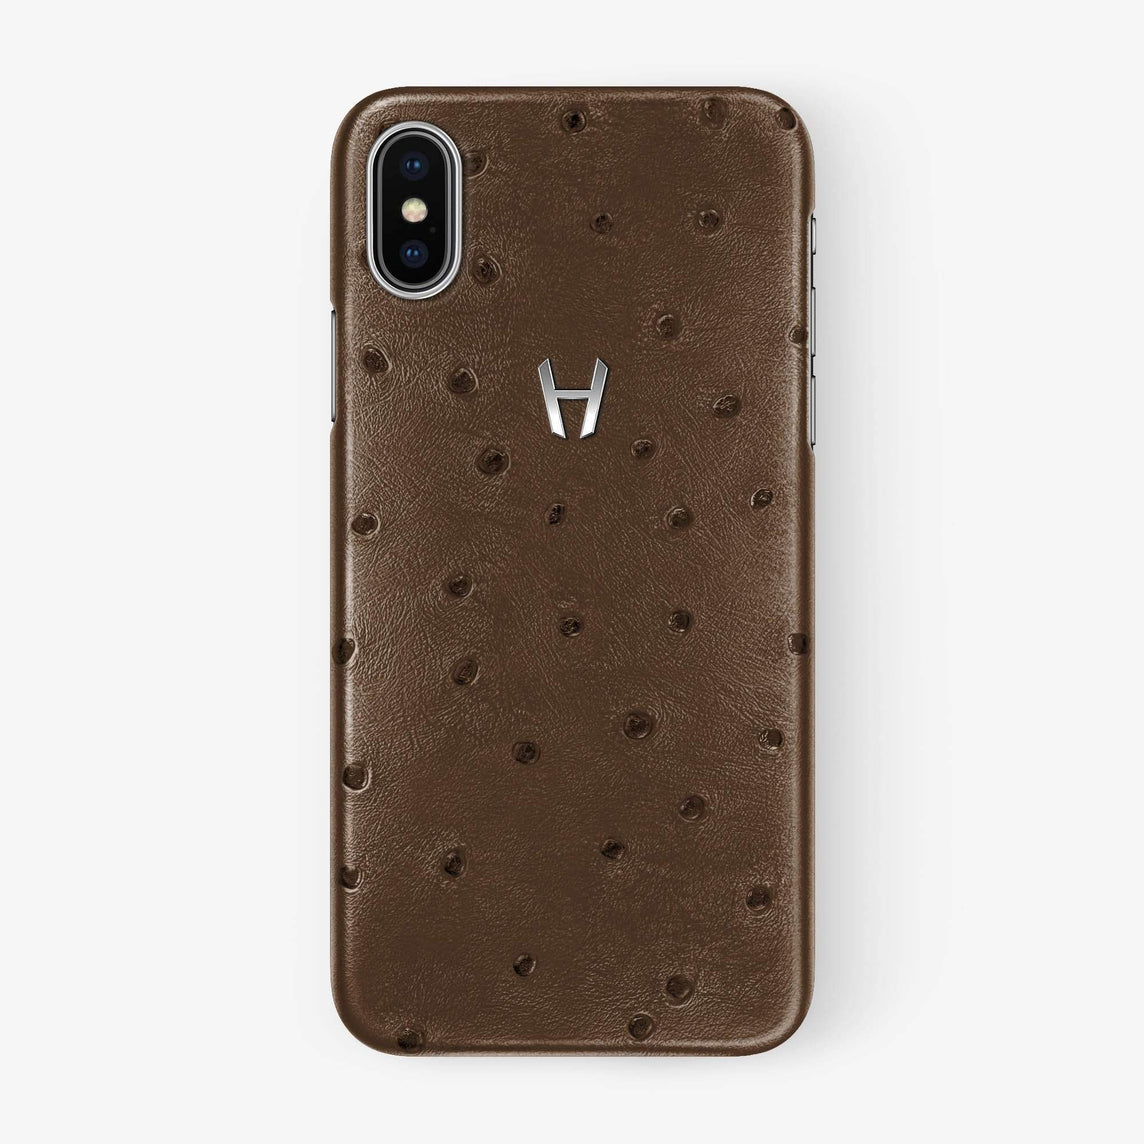 Ostrich Case iPhone Xs Max | Tobacco - Stainless Steel withouth-personalization